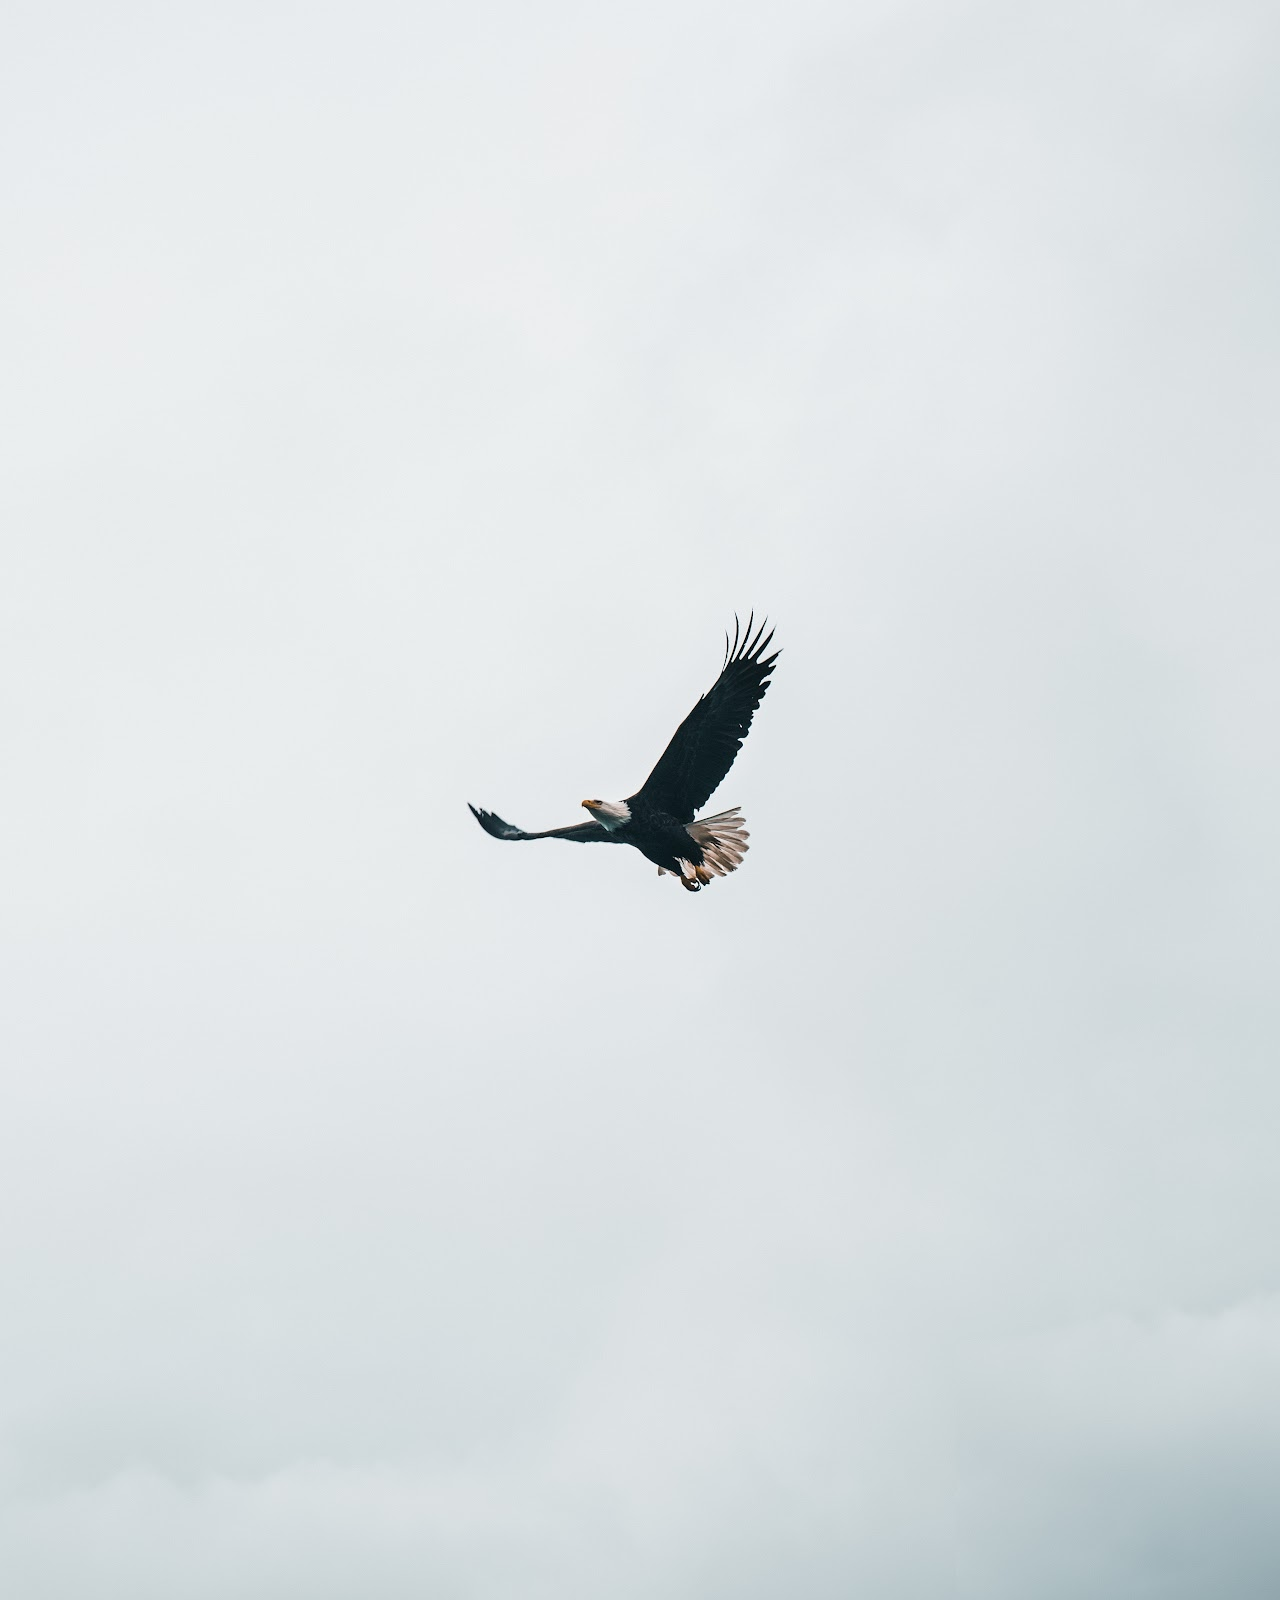 Eagle flying against a gray sky with wings outstretched